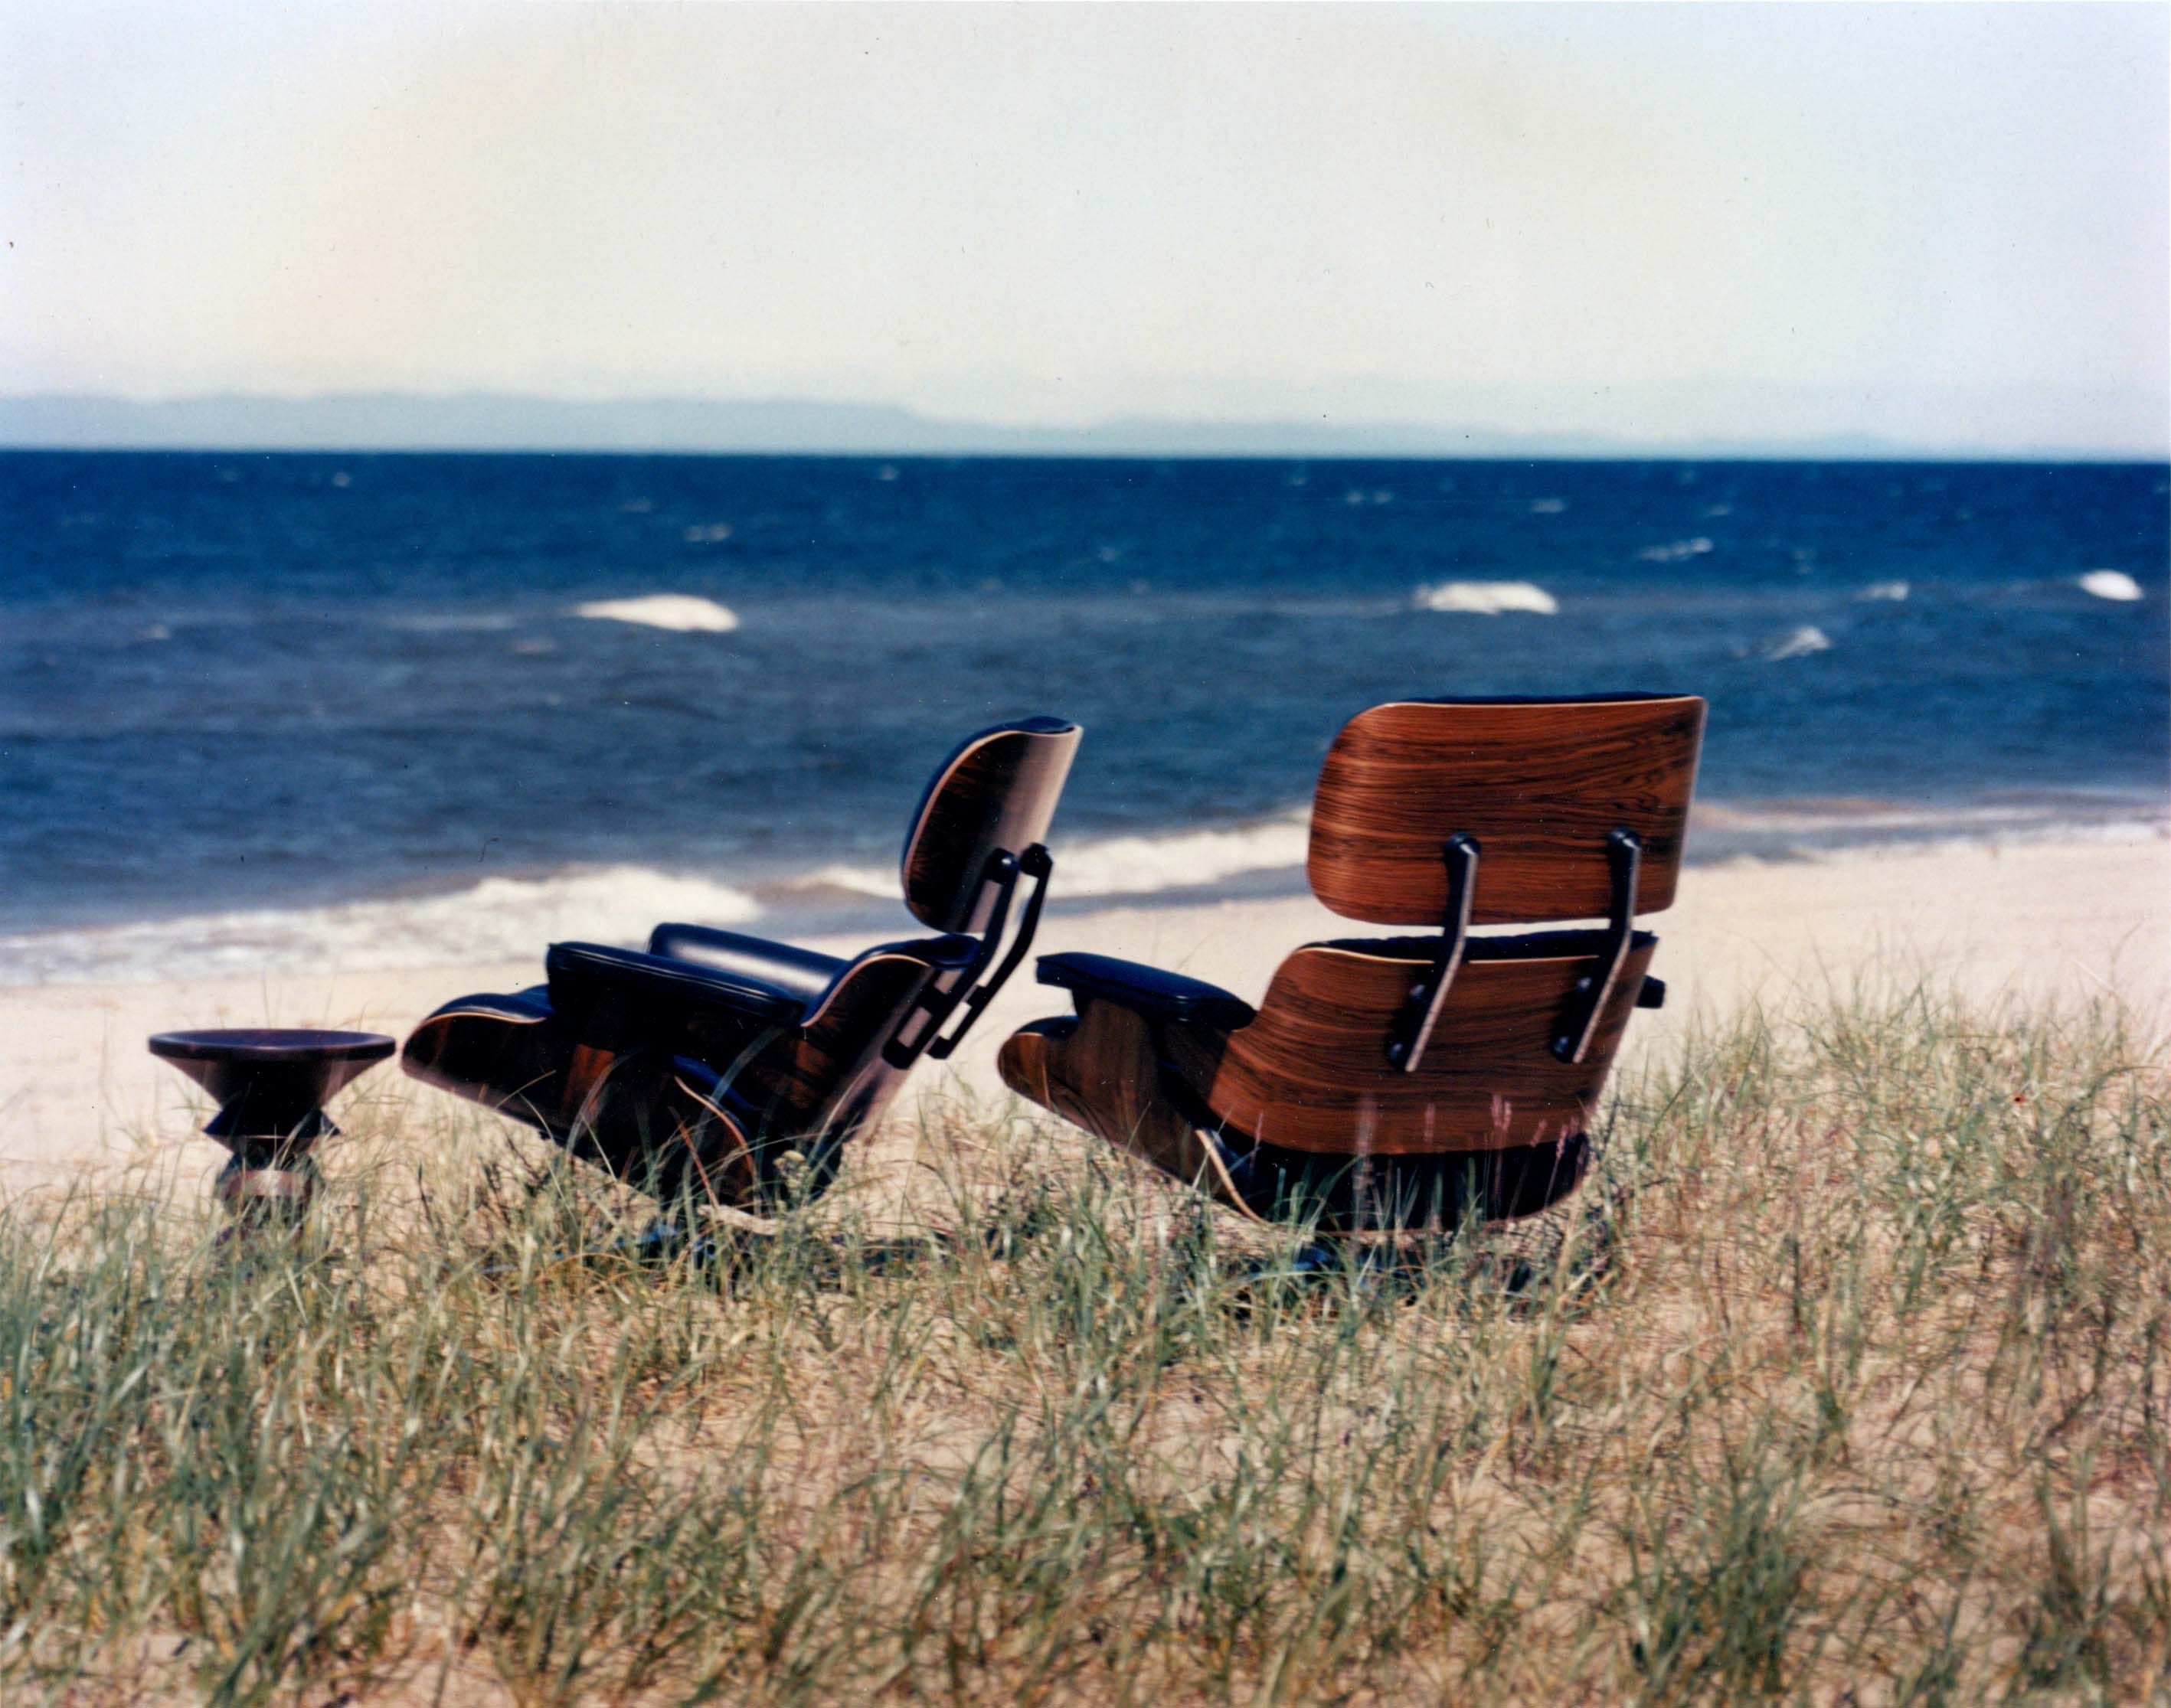 See Shells Down By The Sea Shore Authentic Eames 670 Lounge Chairs And An Eames Walnut Stool Enjoying The Beach View Beautiful Beaches Oceanview